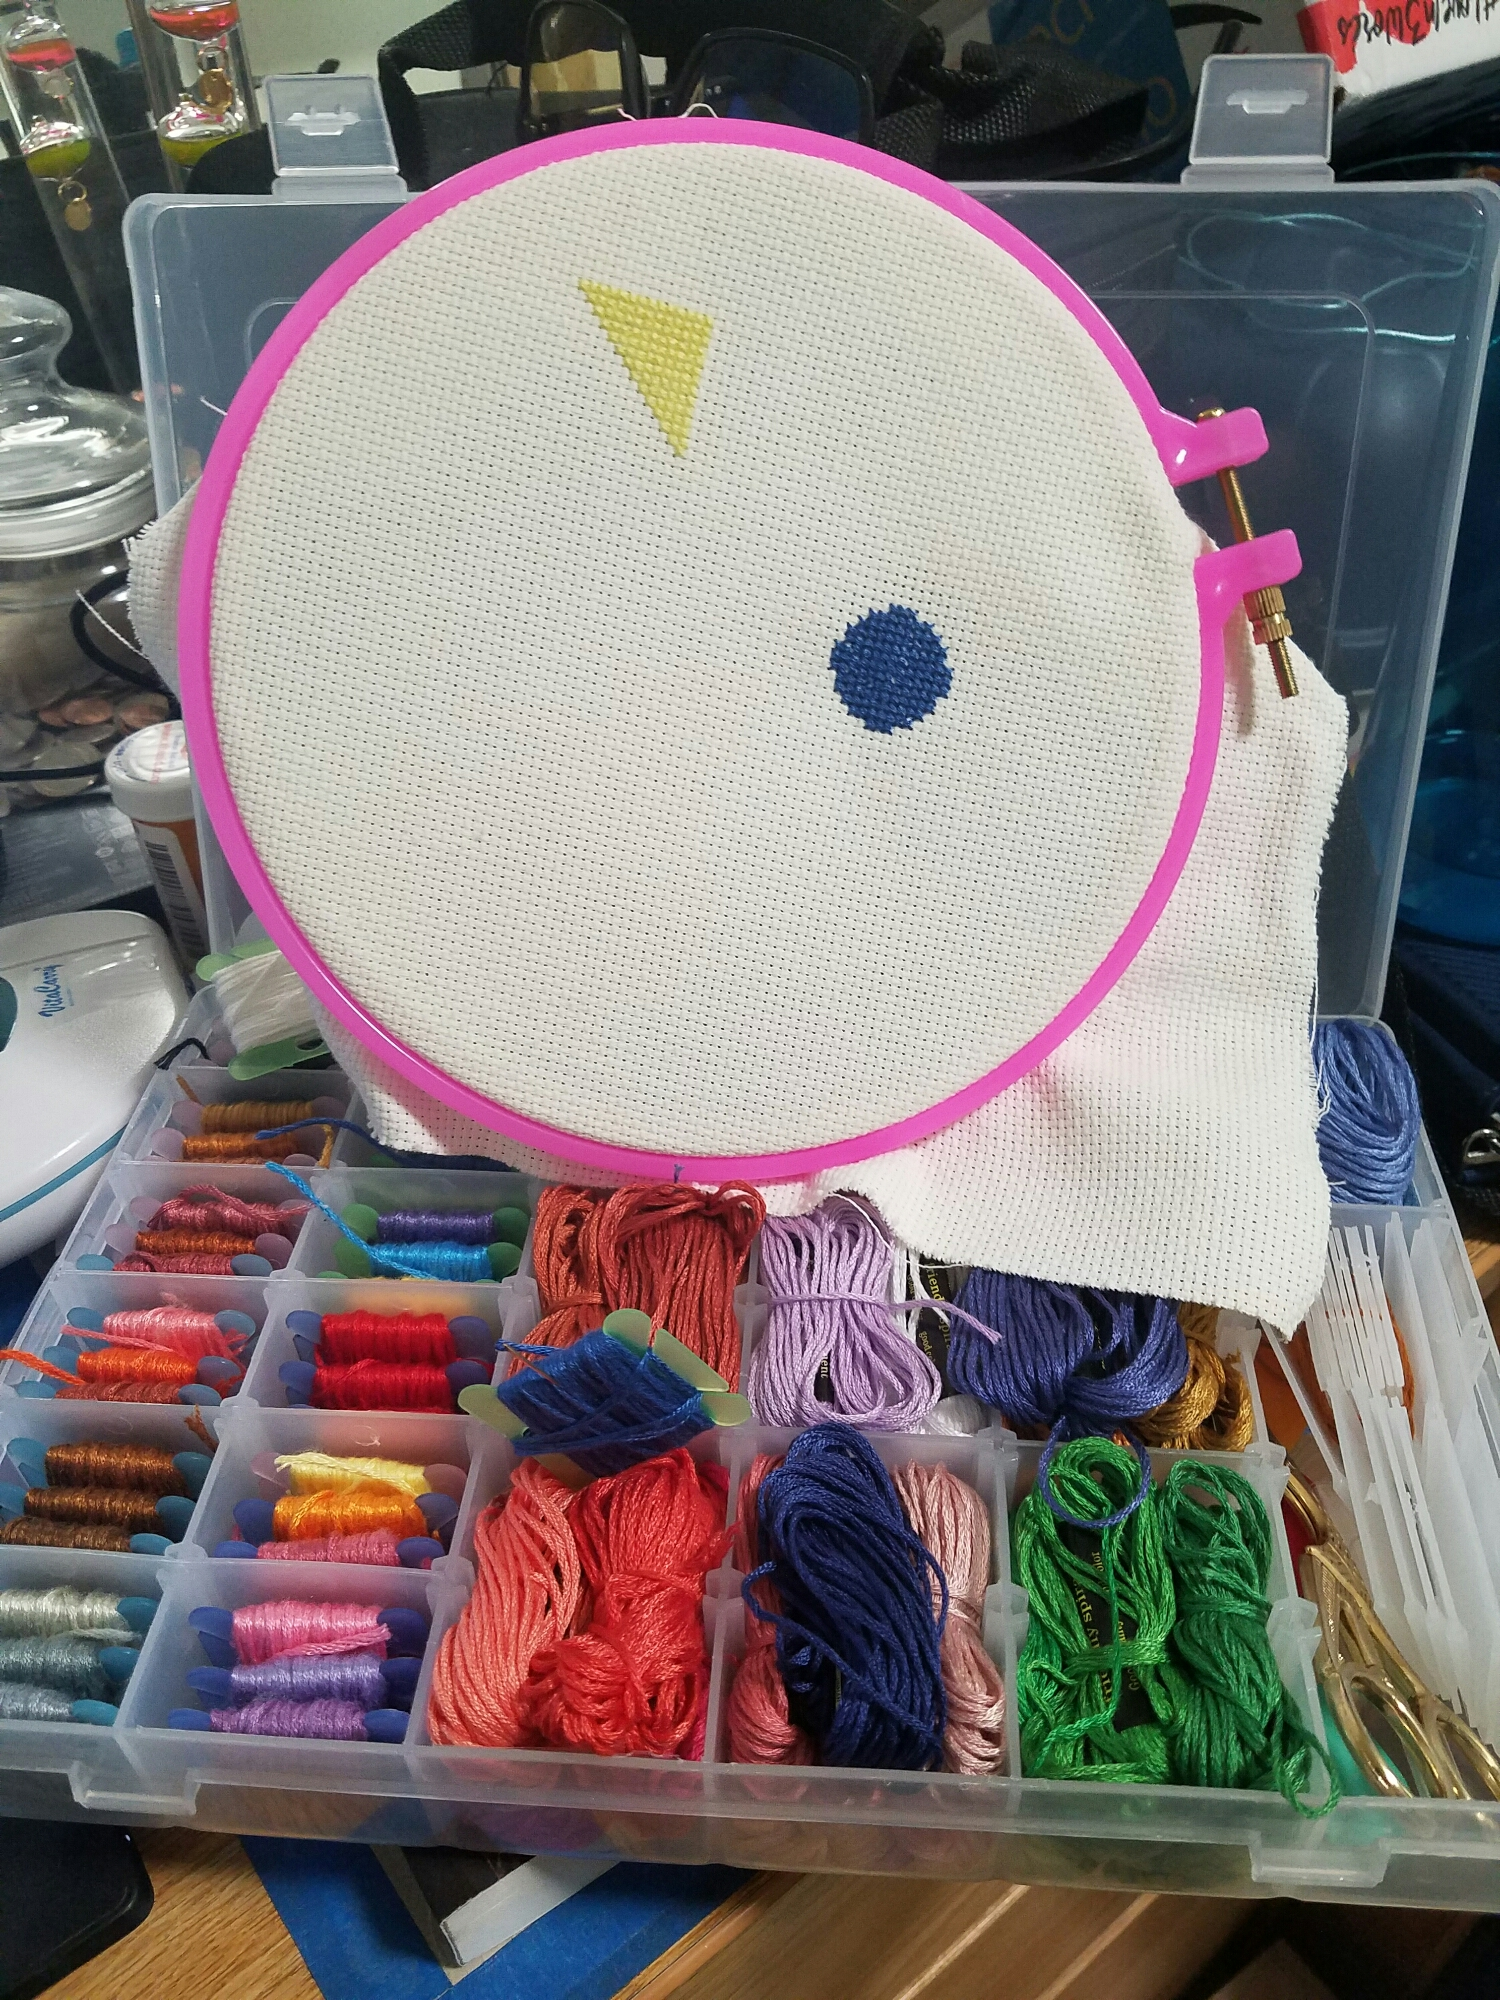 Photo: A cross-stitch on a hoop depicting a yellow triangle and a blue circle, resting on a box of embroidery supplies.